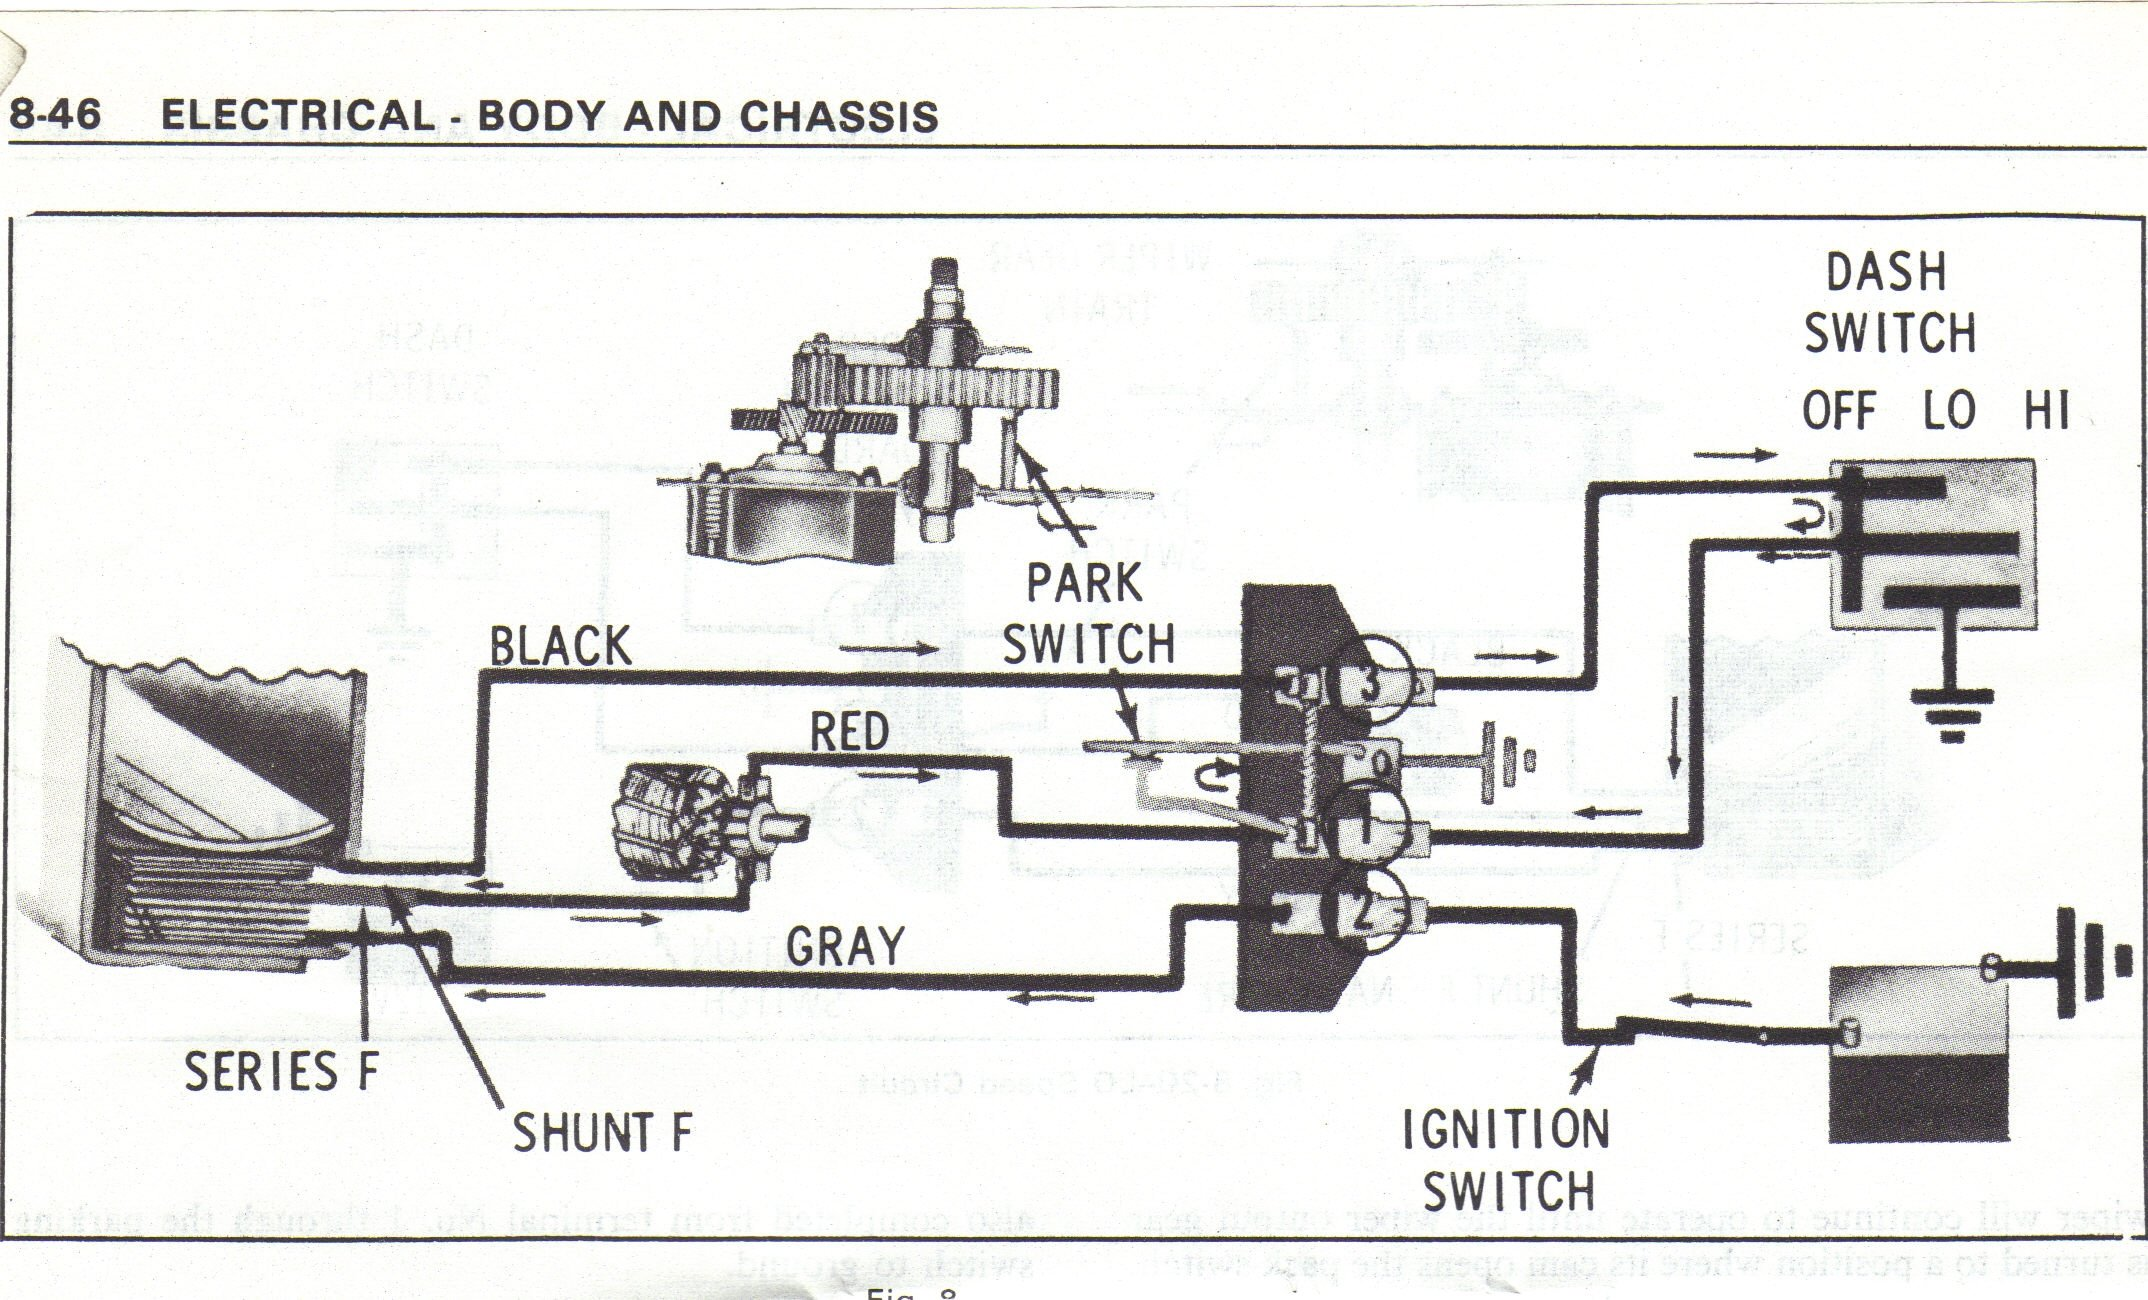 1969 chevelle wiper motor wiring diagram